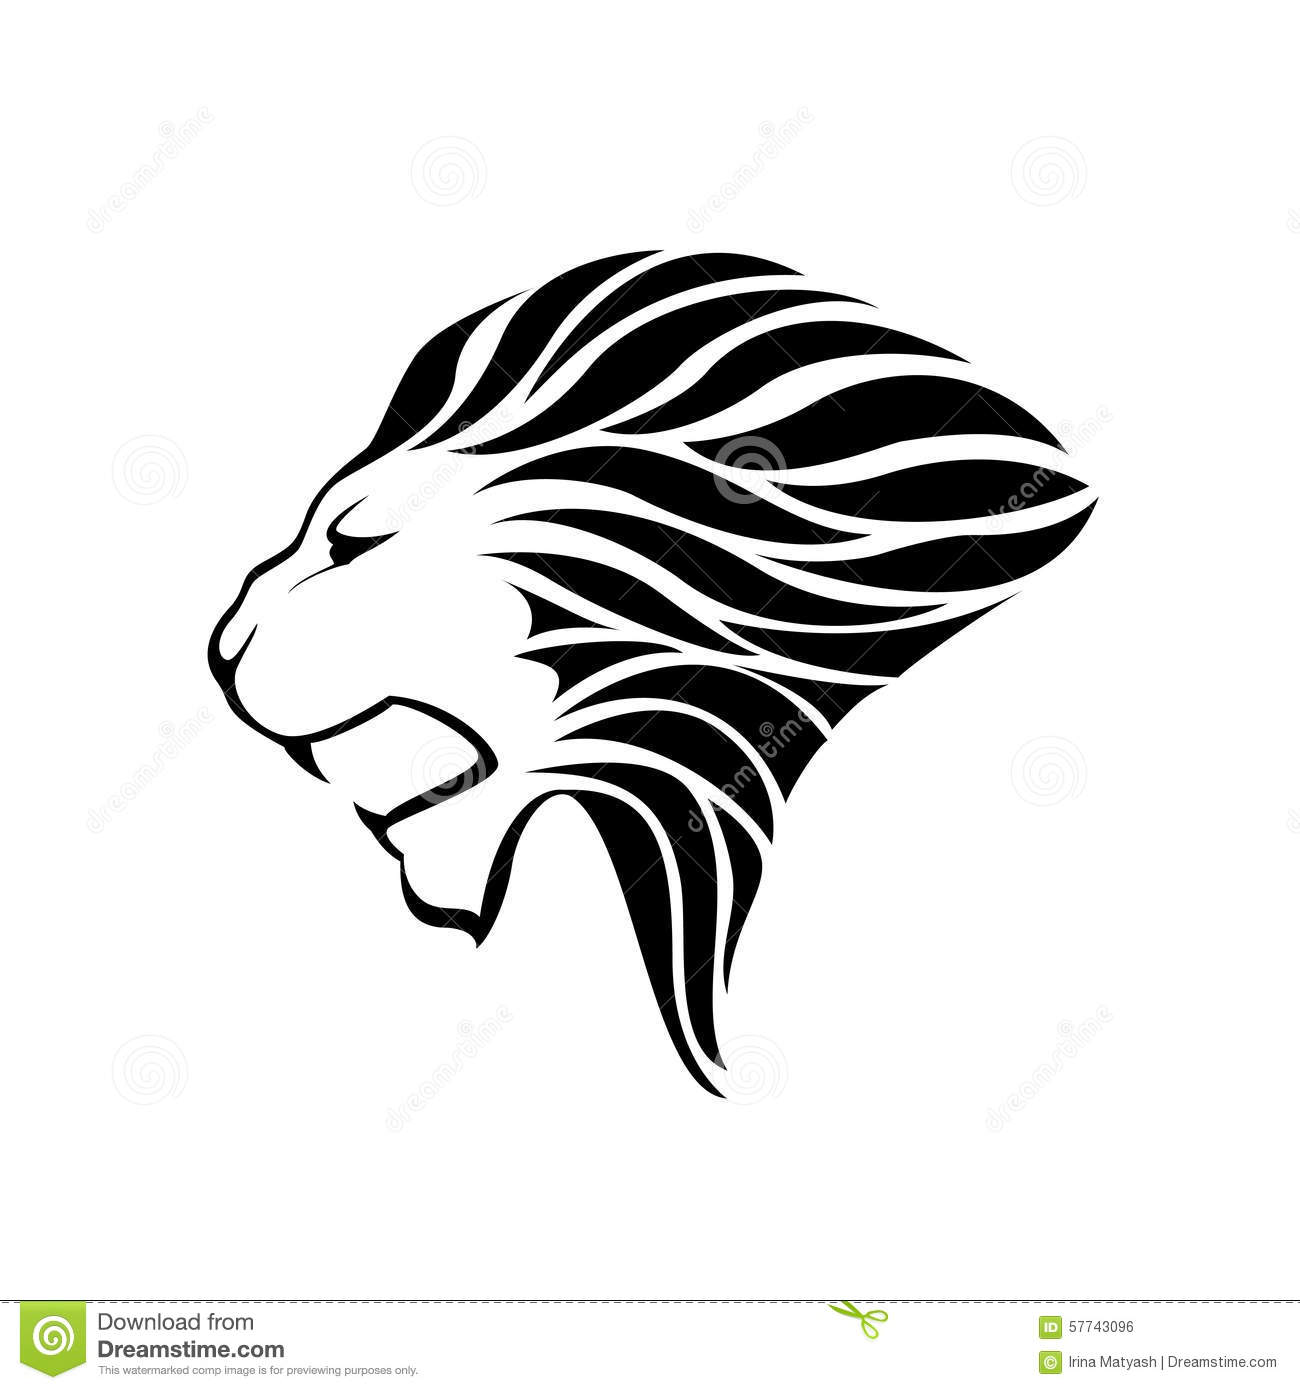 Lion head silhouette on white background - vector illustration.